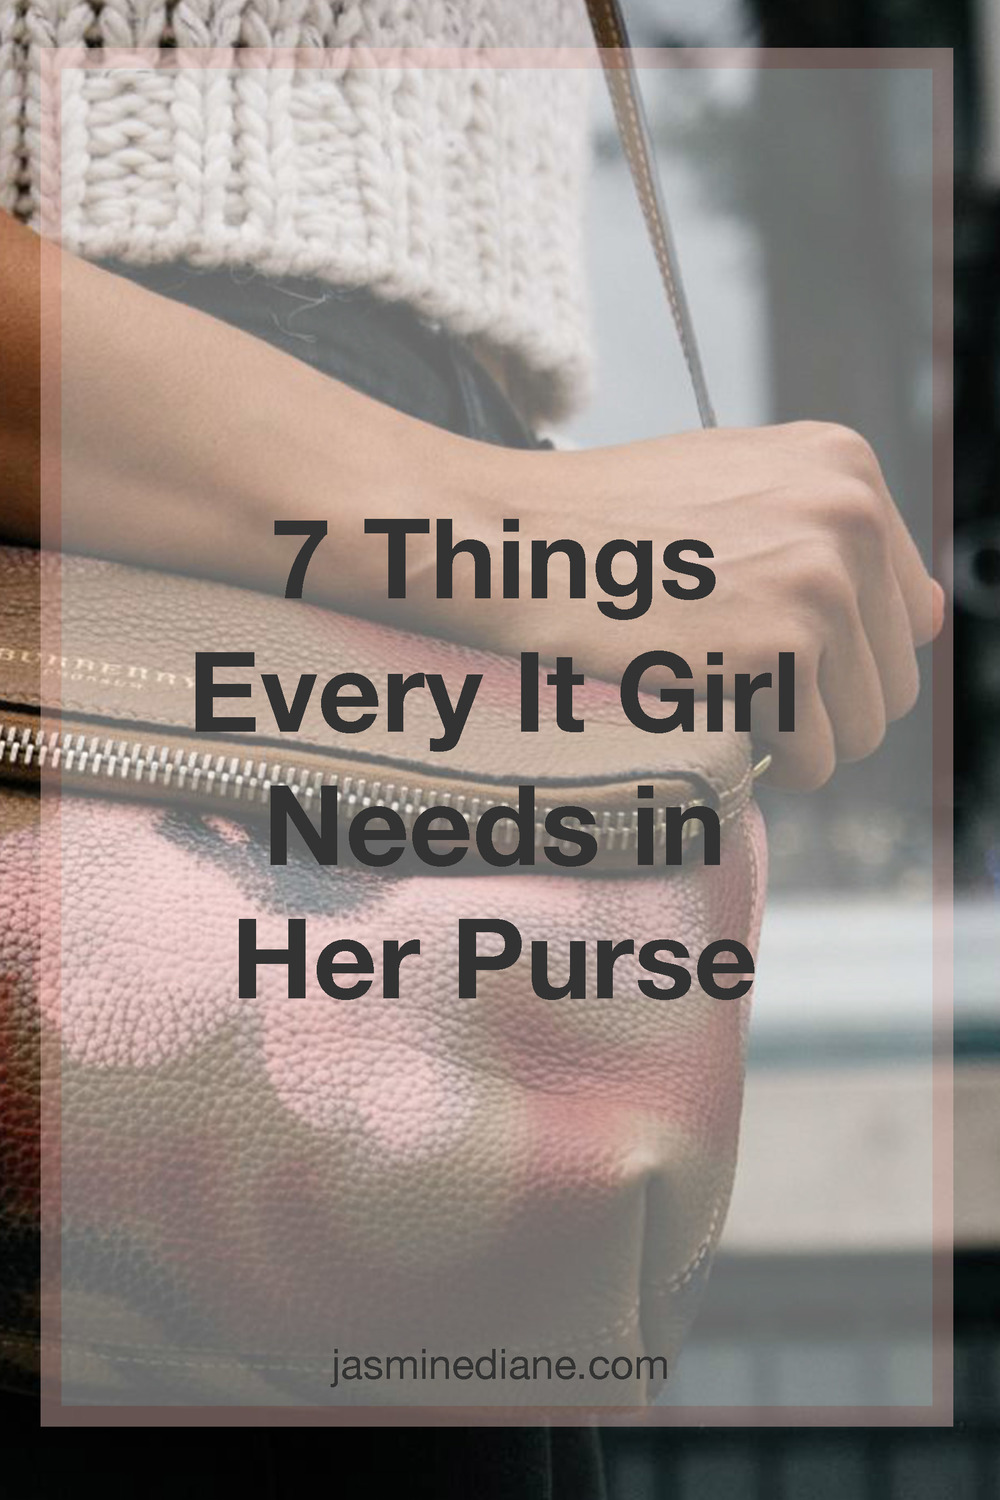 7 things every girl needs in her purse